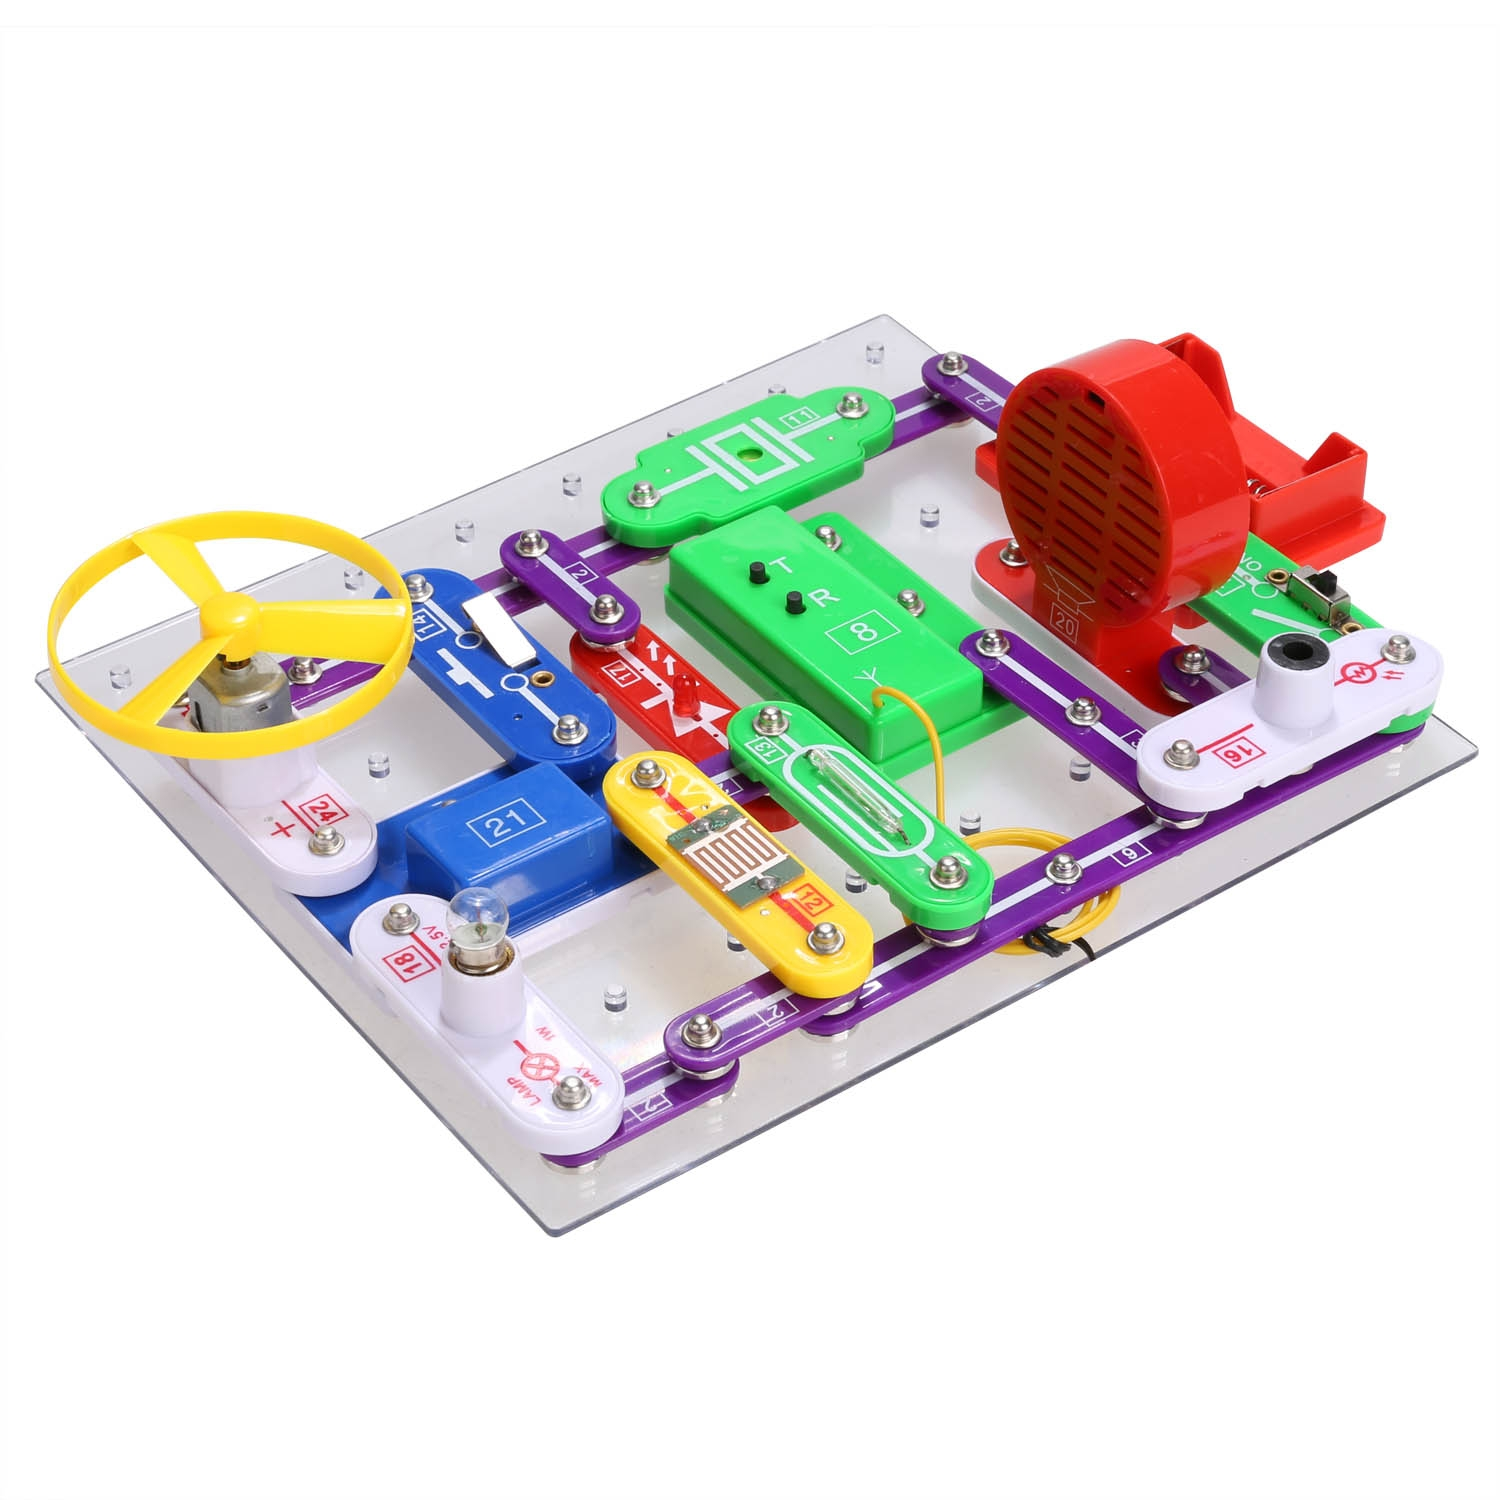 Elenco Snap Circuits Lights Electronics Discovery Kit Wiring Kamisco Pro Curcuits